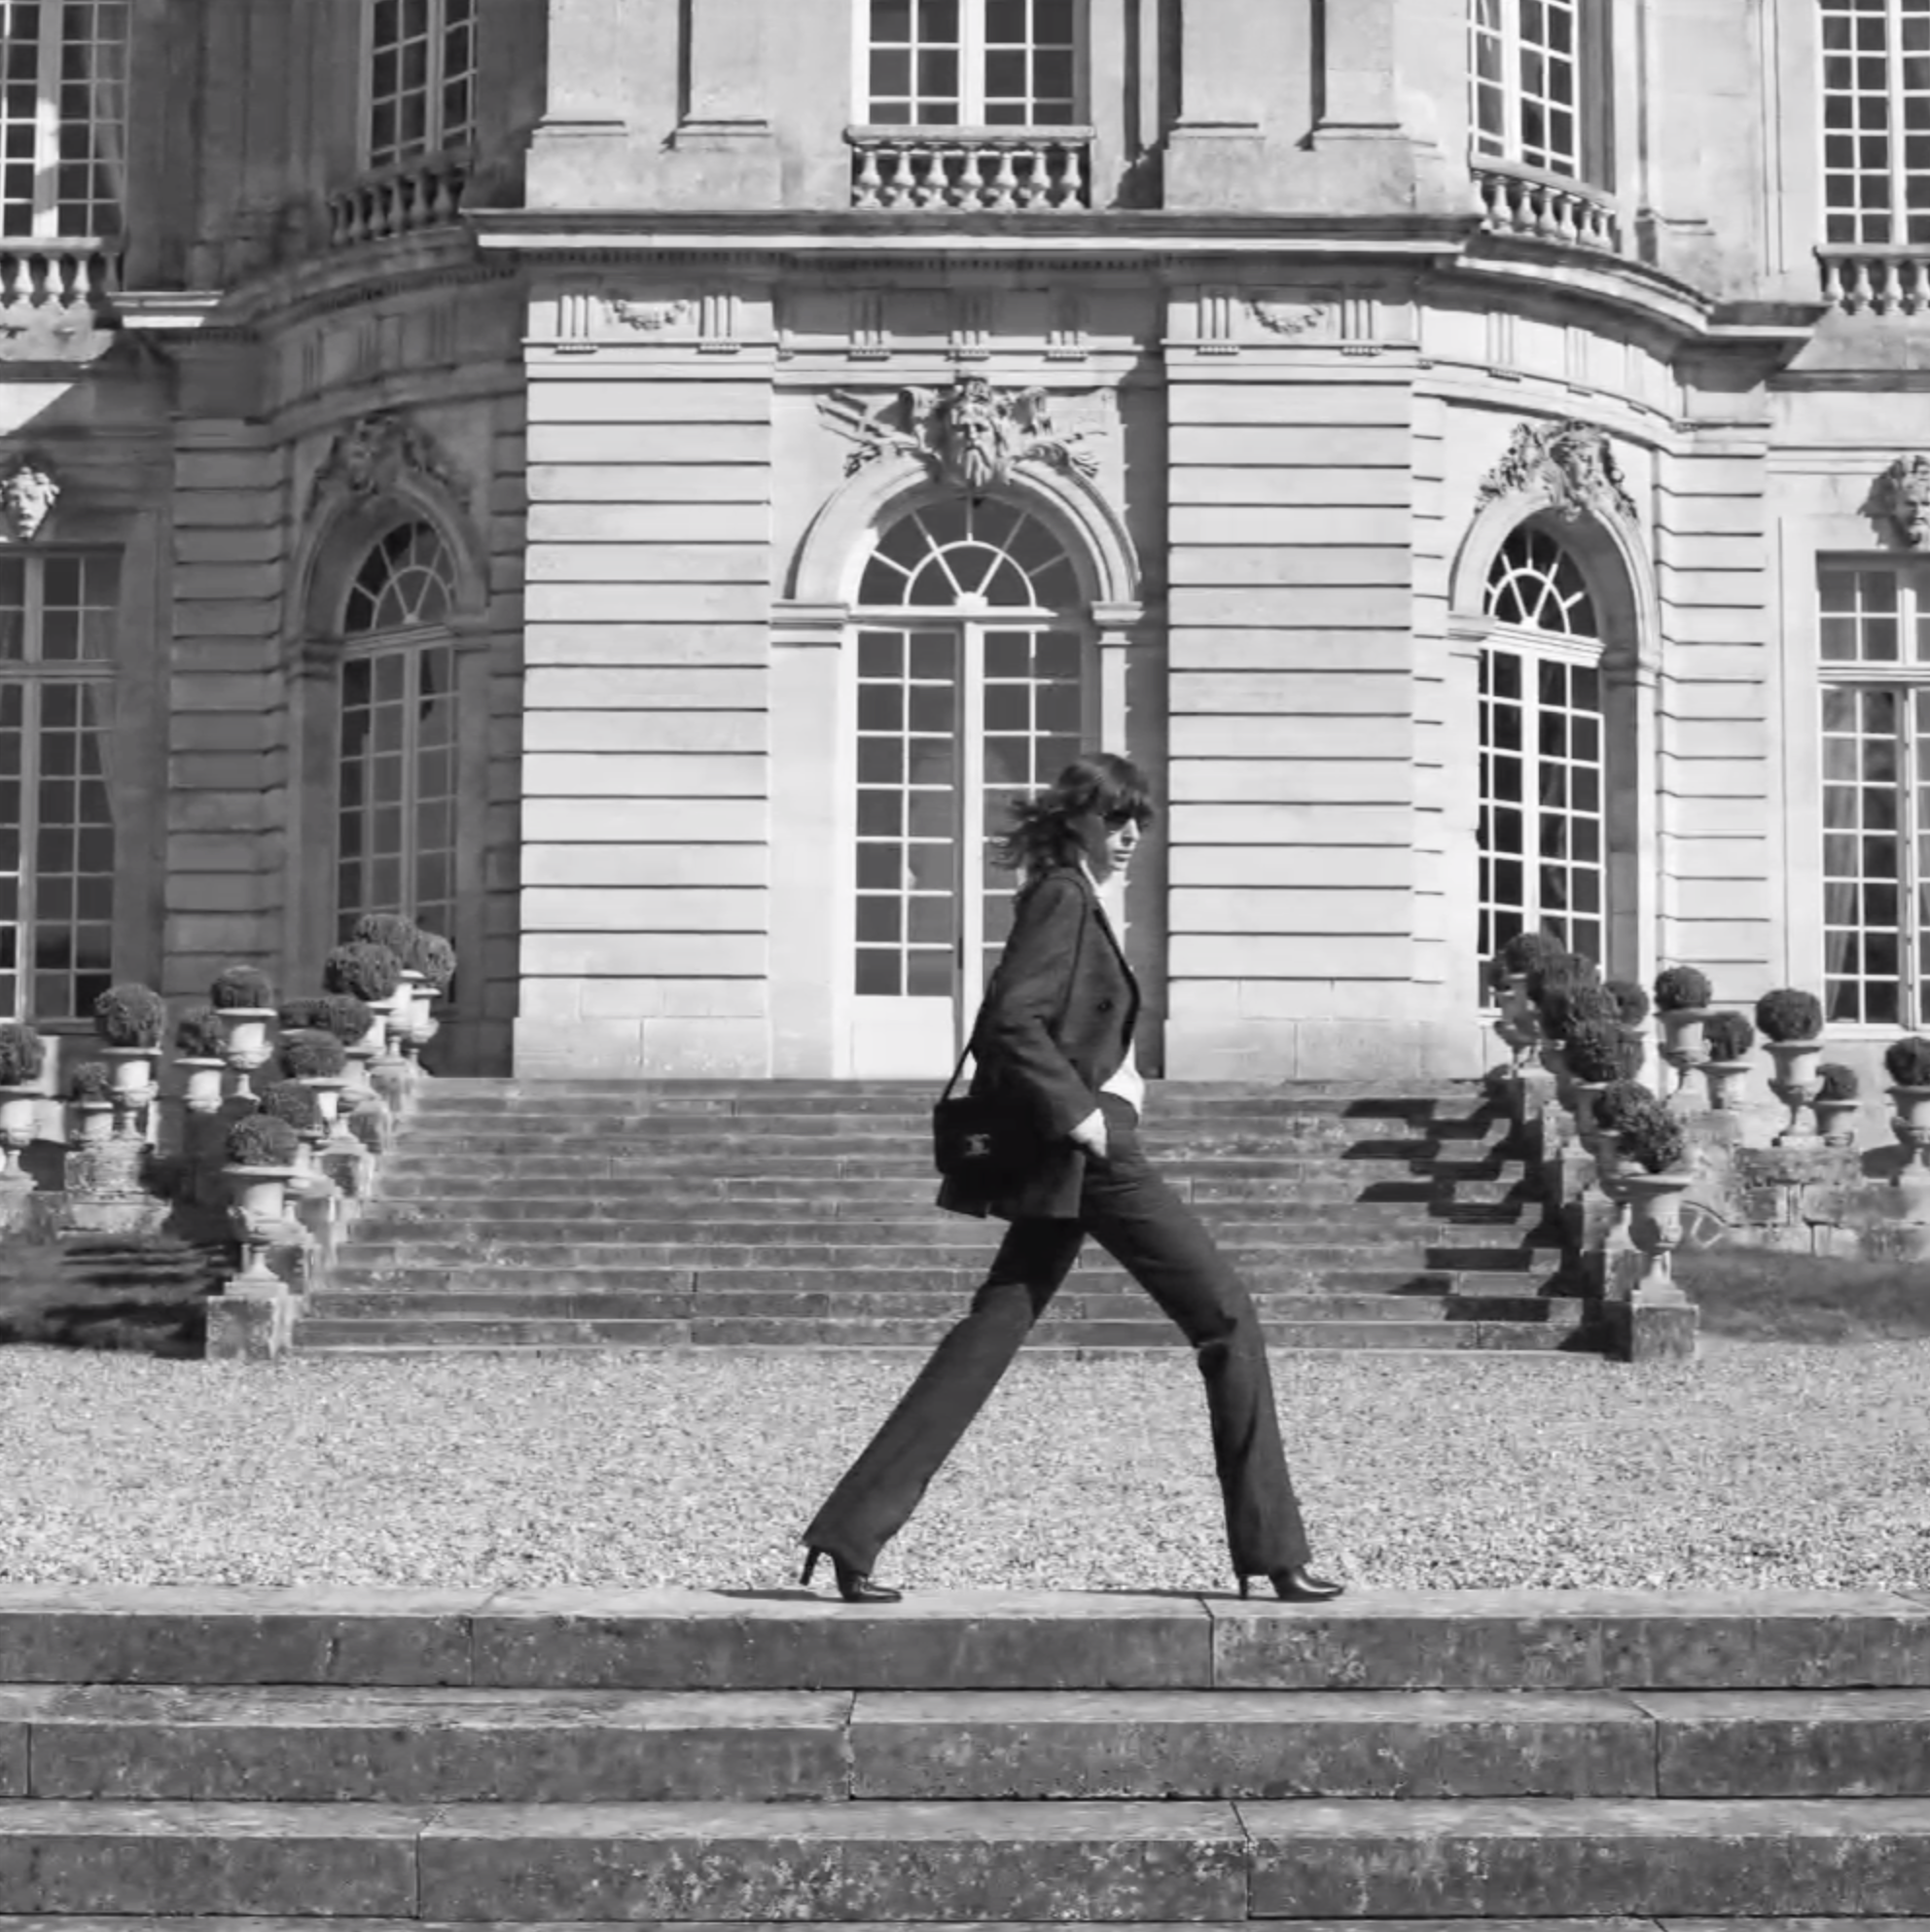 Celine The 16 Collection Fall 2019 Fashion Ad Campaign by Hedi Slimane